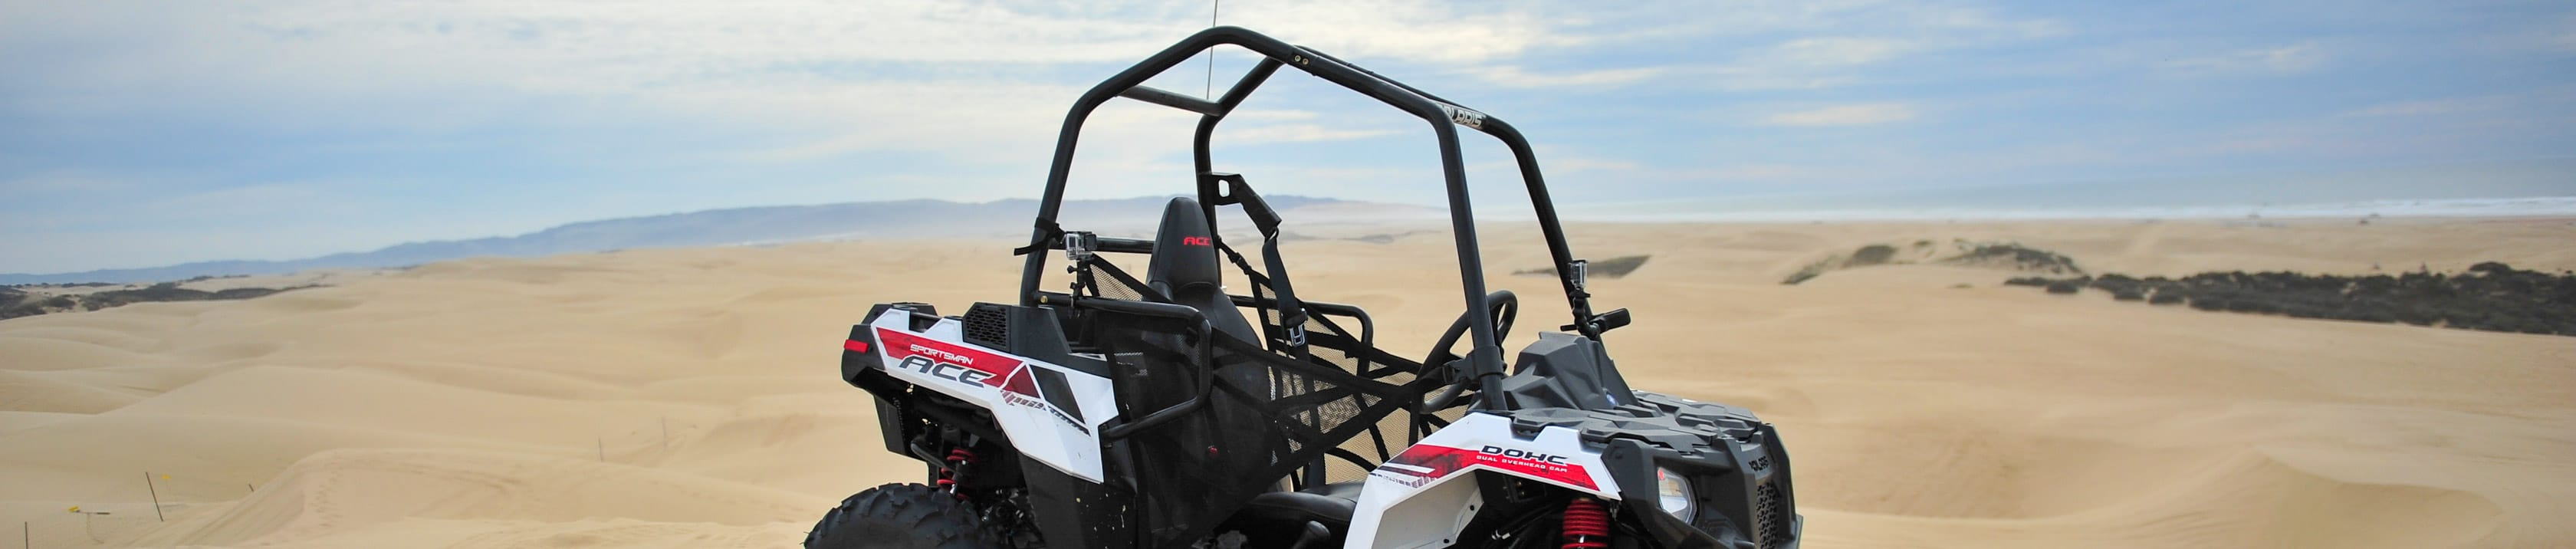 Polaris Ace without guests at Pismo Beach